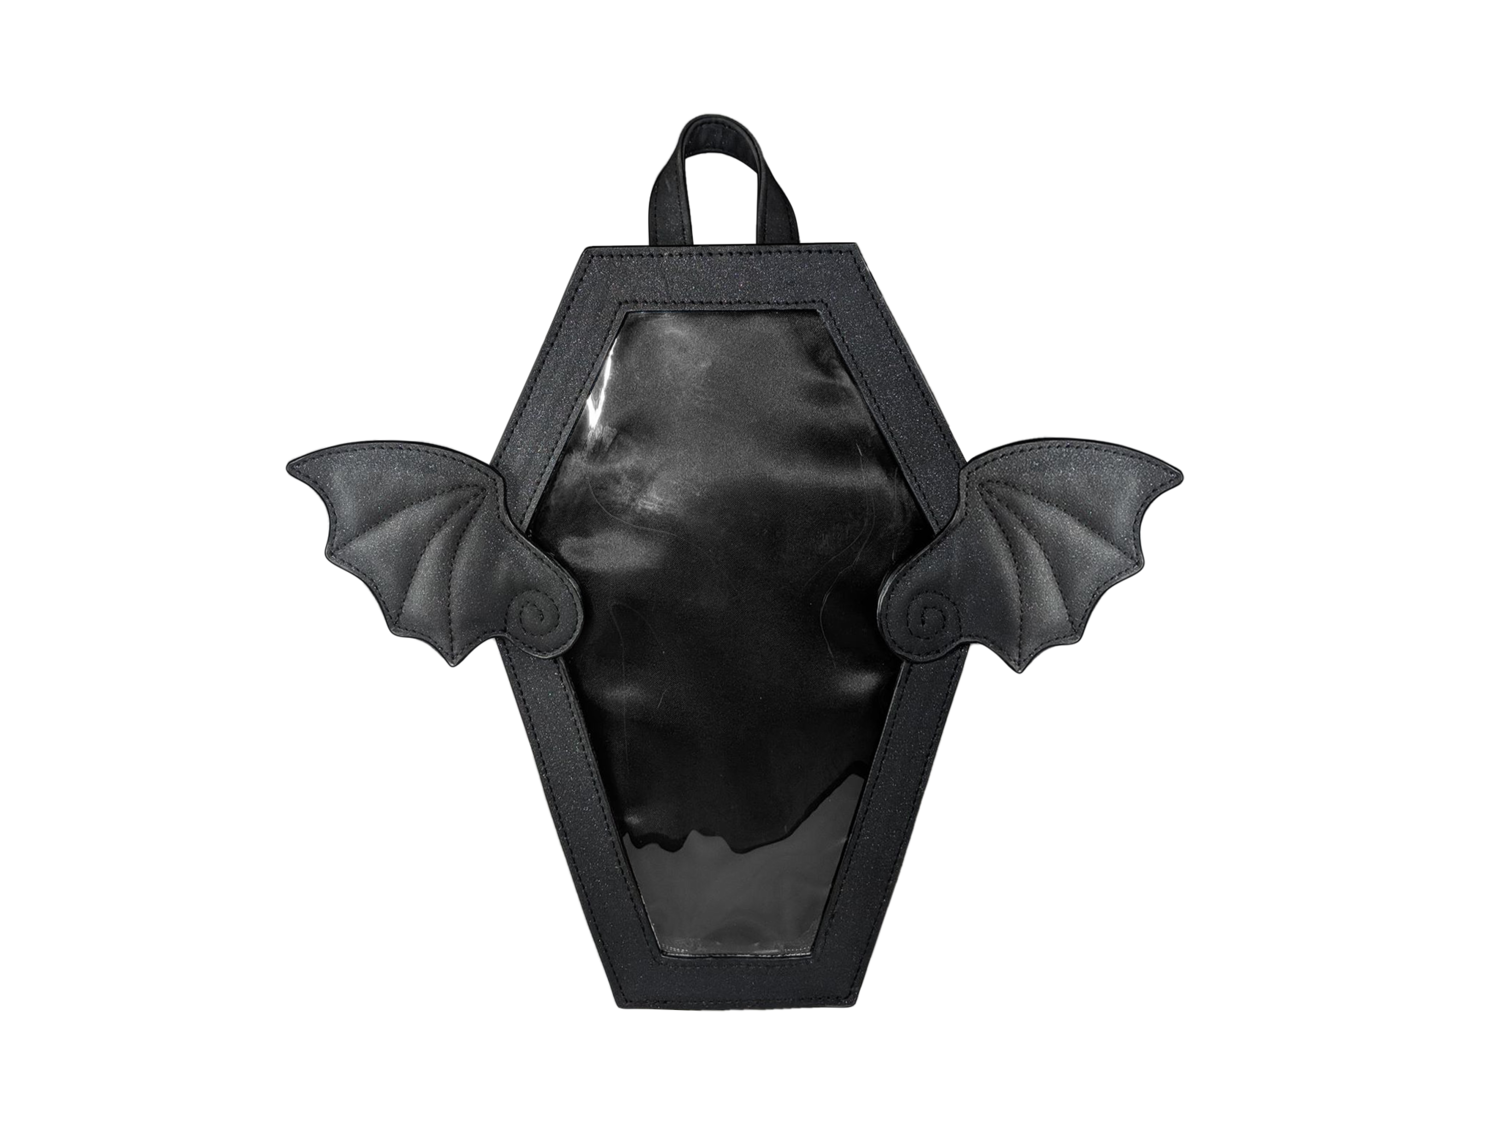 ♡ Miju Miju Black Glitter Winged Coffin Ita Bag ♡ — NattyCat